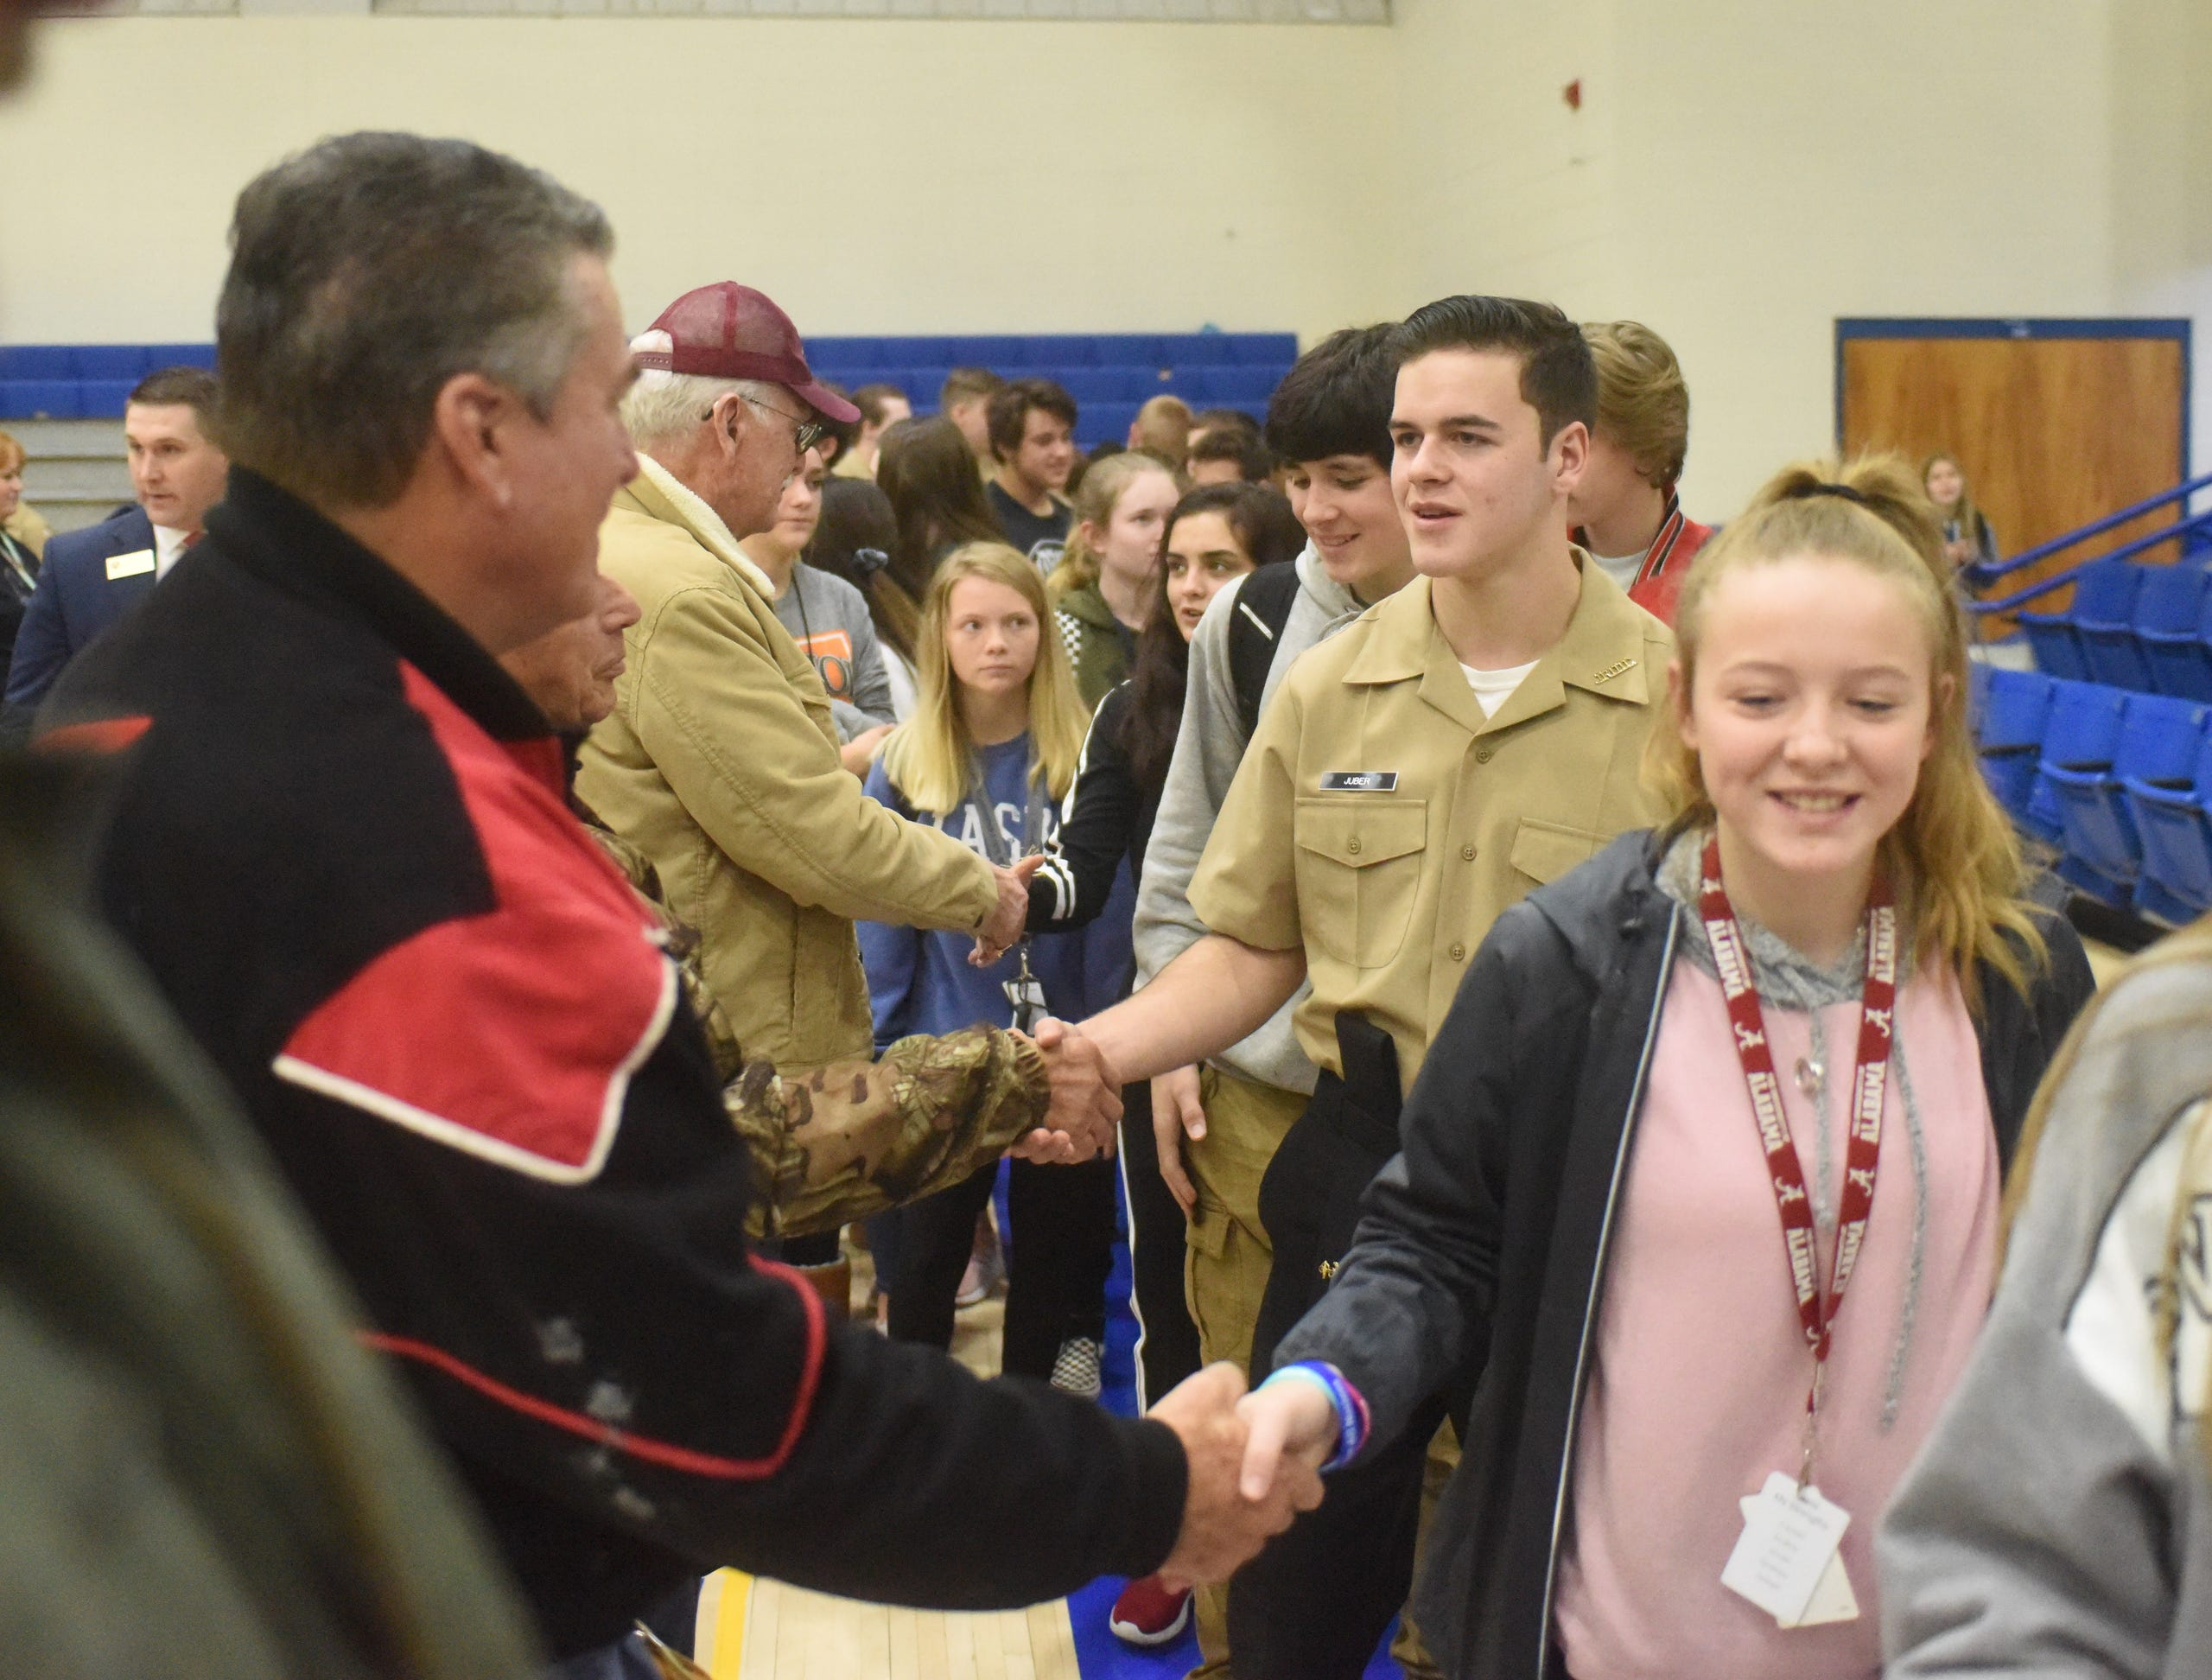 An image from the 2019 Freed is Not Free veterans program held Thursday, Nov. 7 at the Mountain Home High School gymnasium.